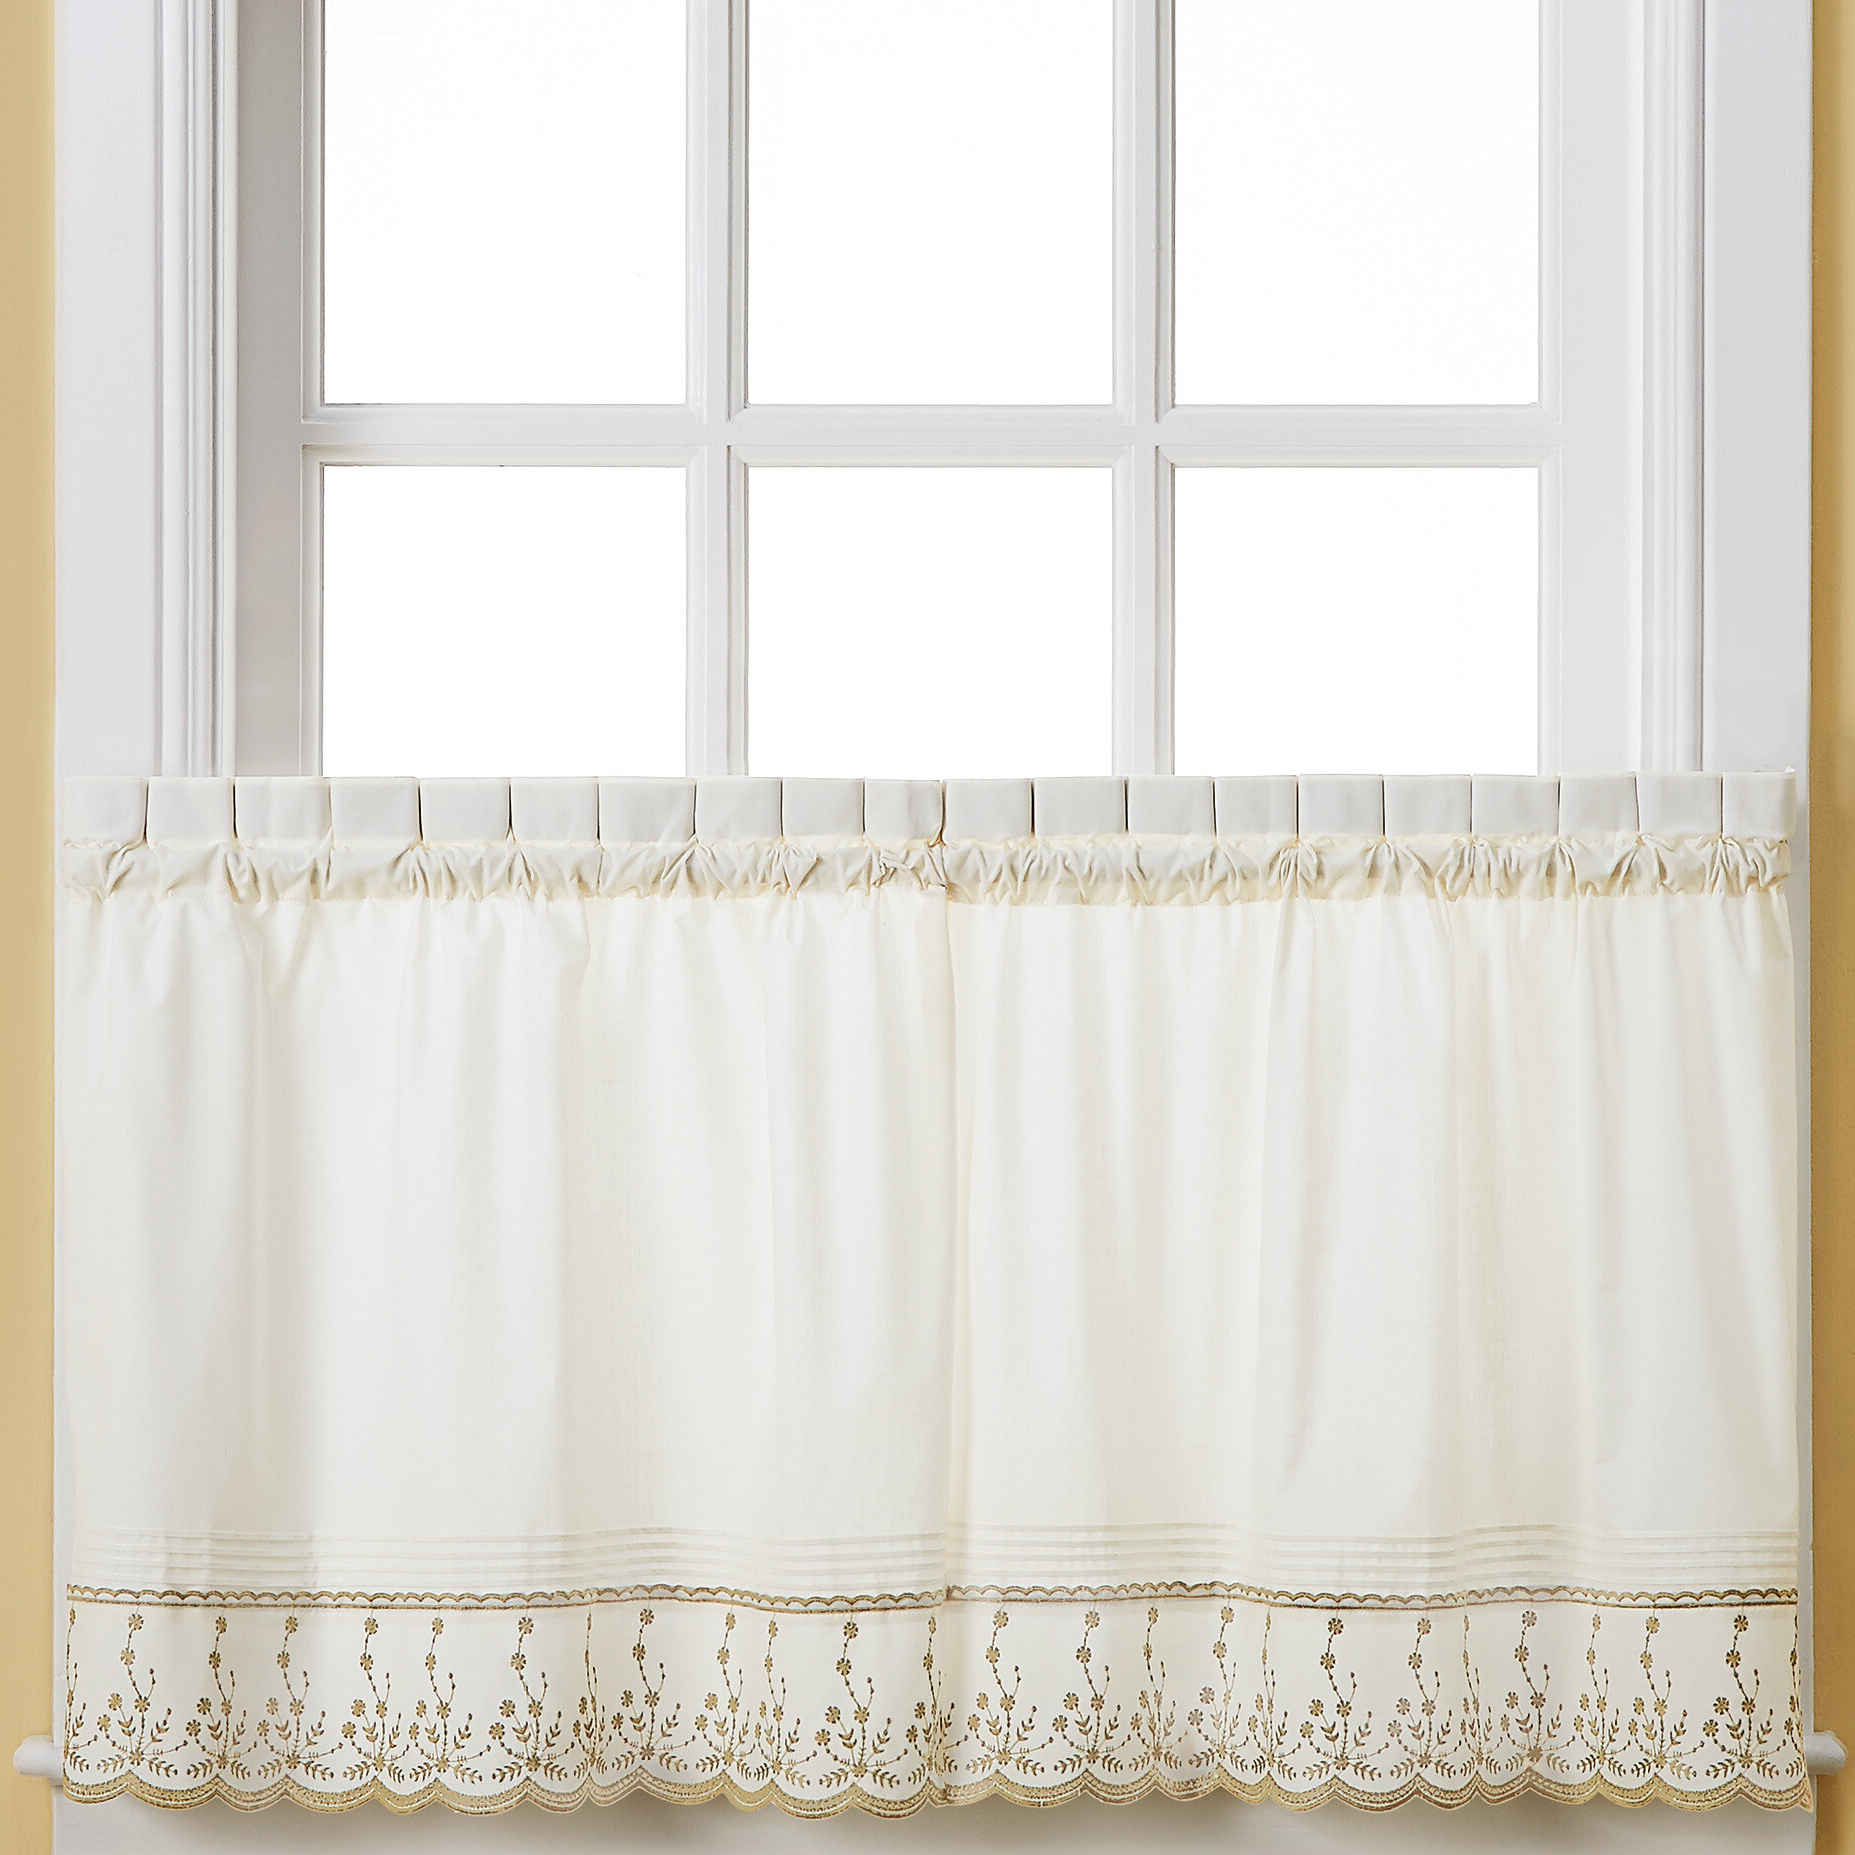 Most Popular Details About Ophelia & Co. Toph Taupe Cafe Curtain Pertaining To Spring Daisy Tiered Curtain 3 Piece Sets (Gallery 18 of 20)